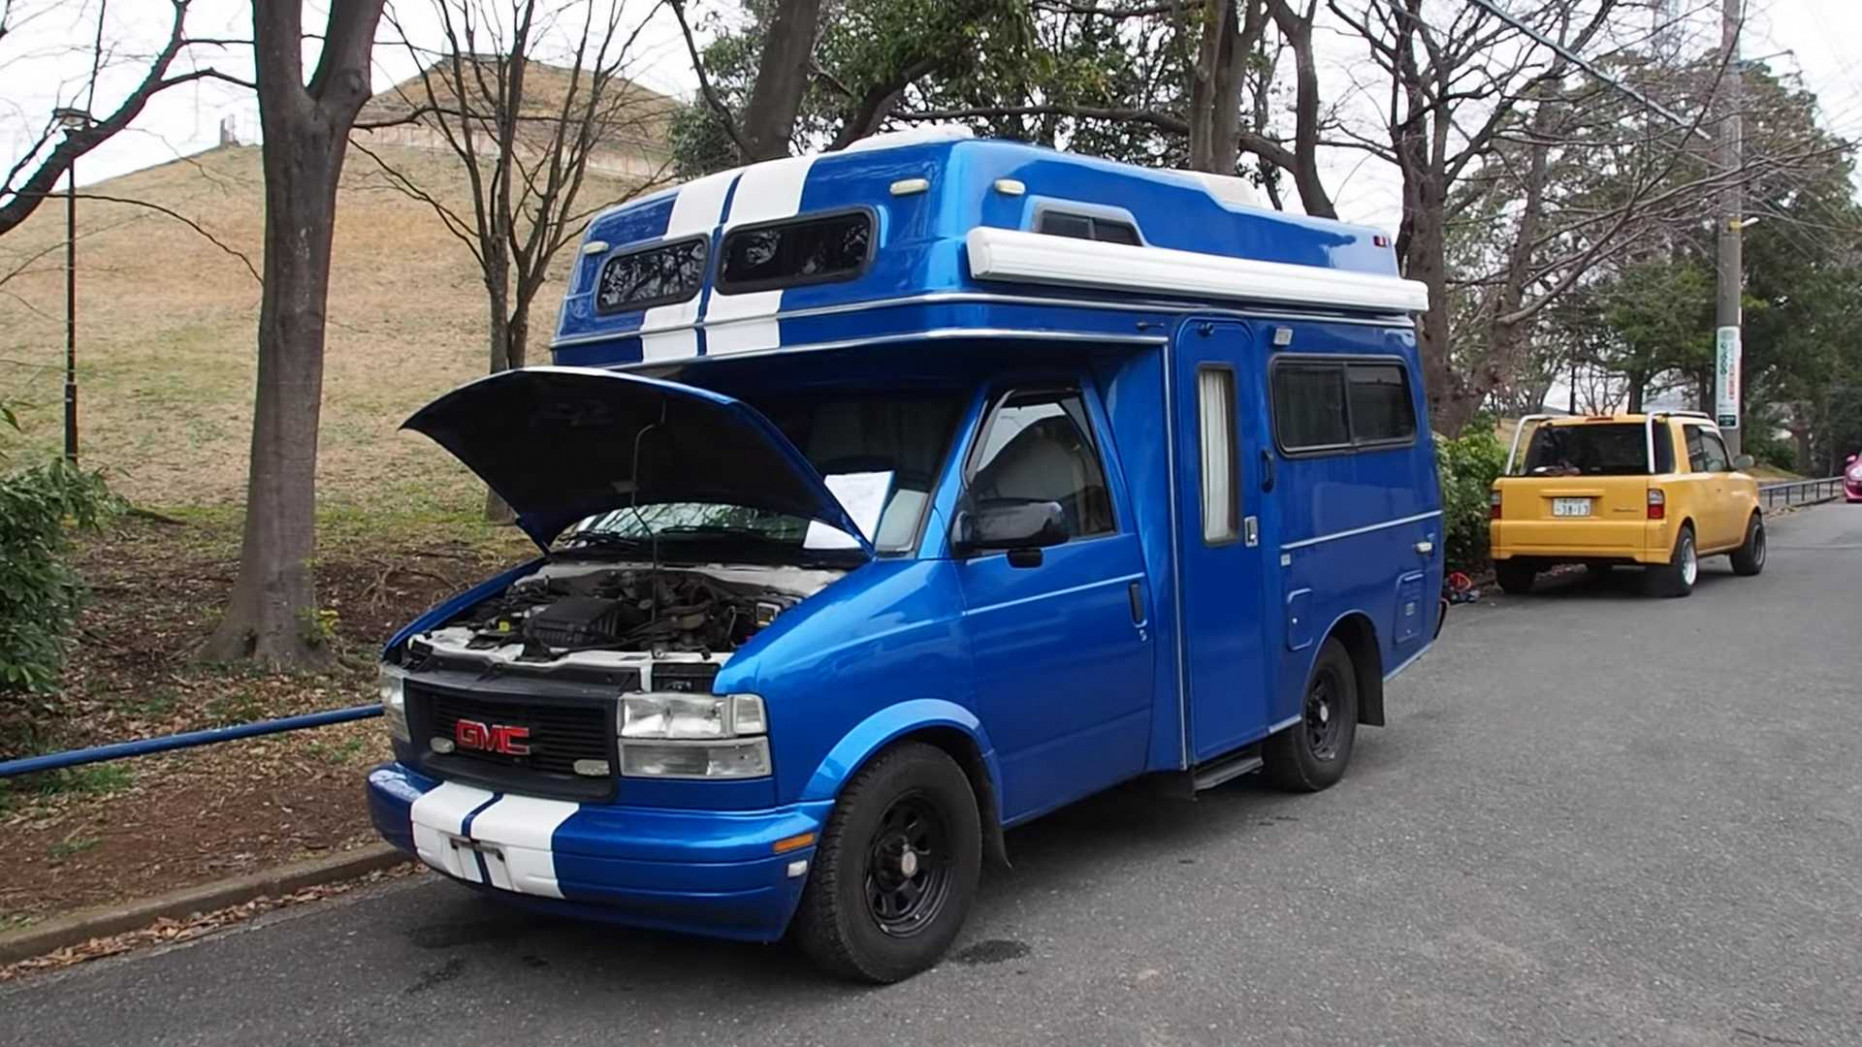 Check Out This GMC Camper With A Cool Look, Weird Story - gmc motorhome for sale 2020